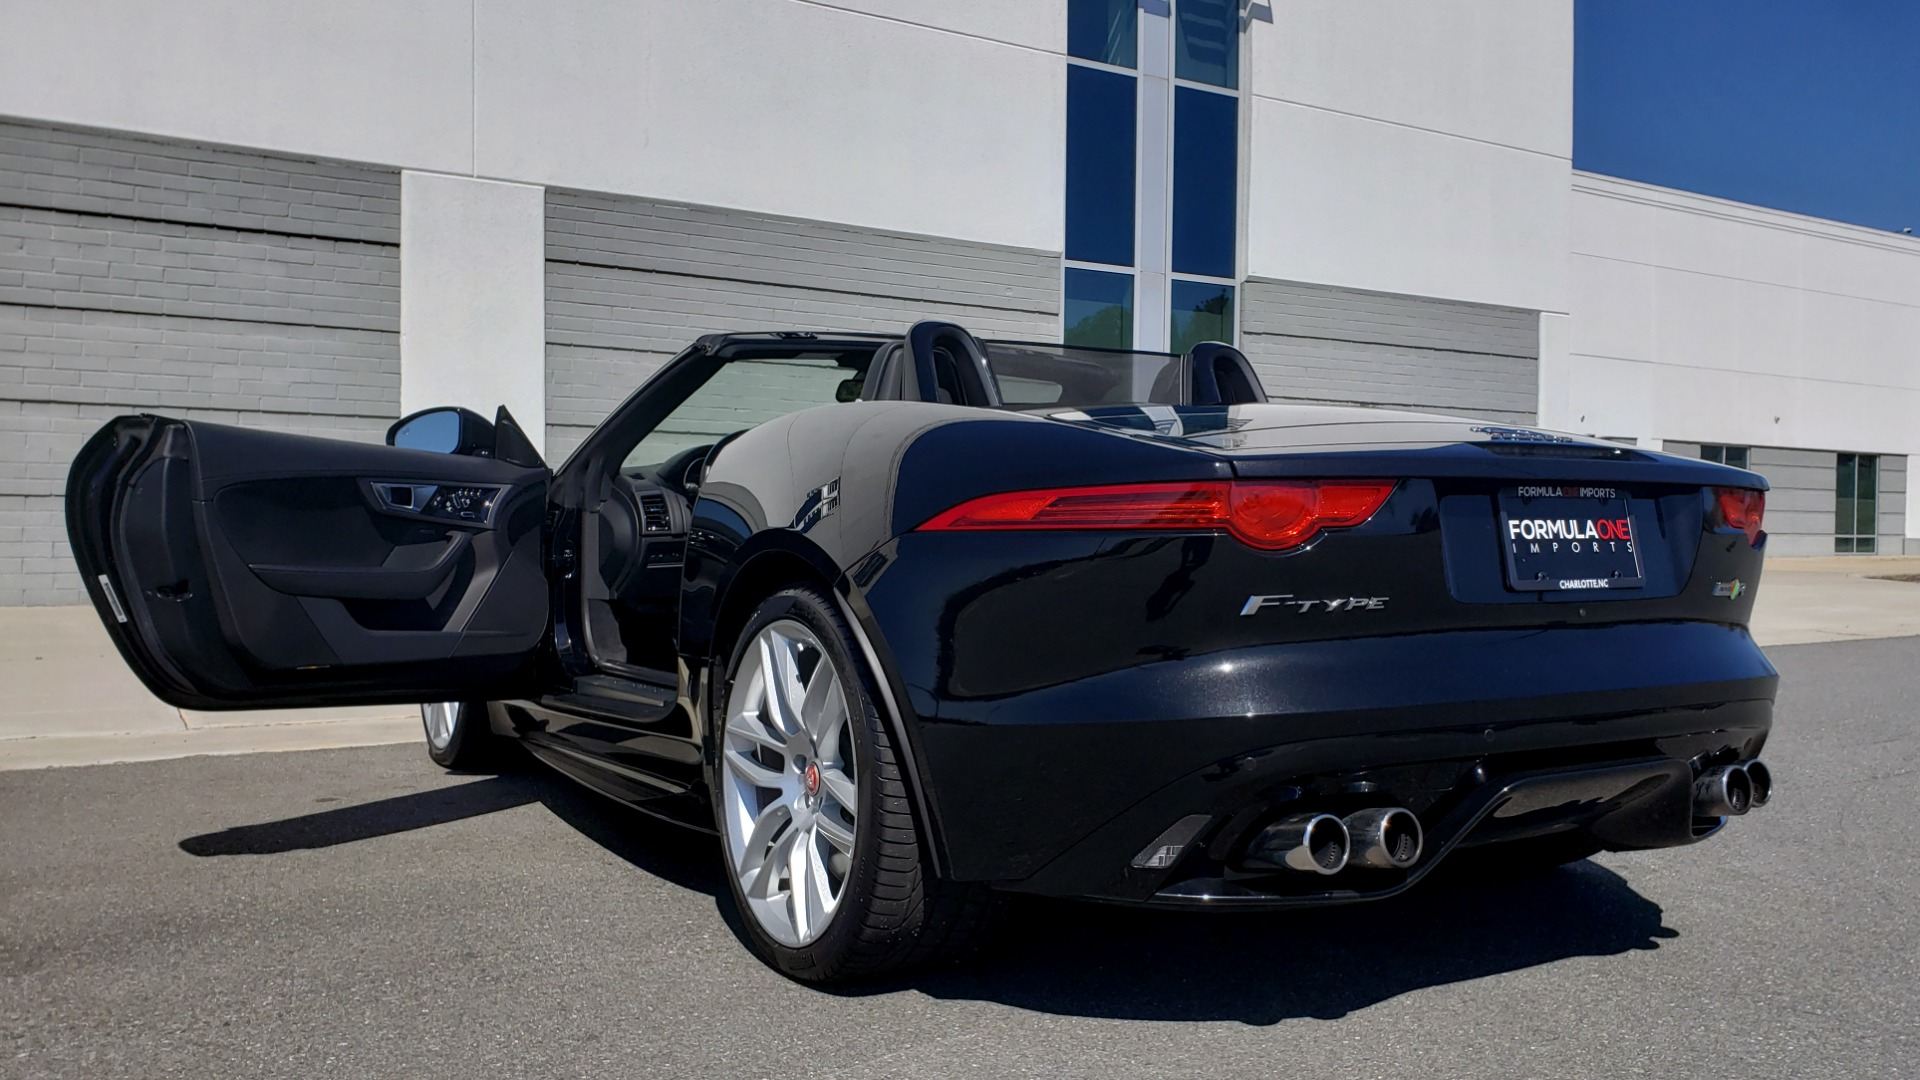 Used 2016 Jaguar F-TYPE R CONVERTIBLE / SC 5.0L 550HP / VISION PACK 3 / BSM / REARVIEW for sale $63,000 at Formula Imports in Charlotte NC 28227 79